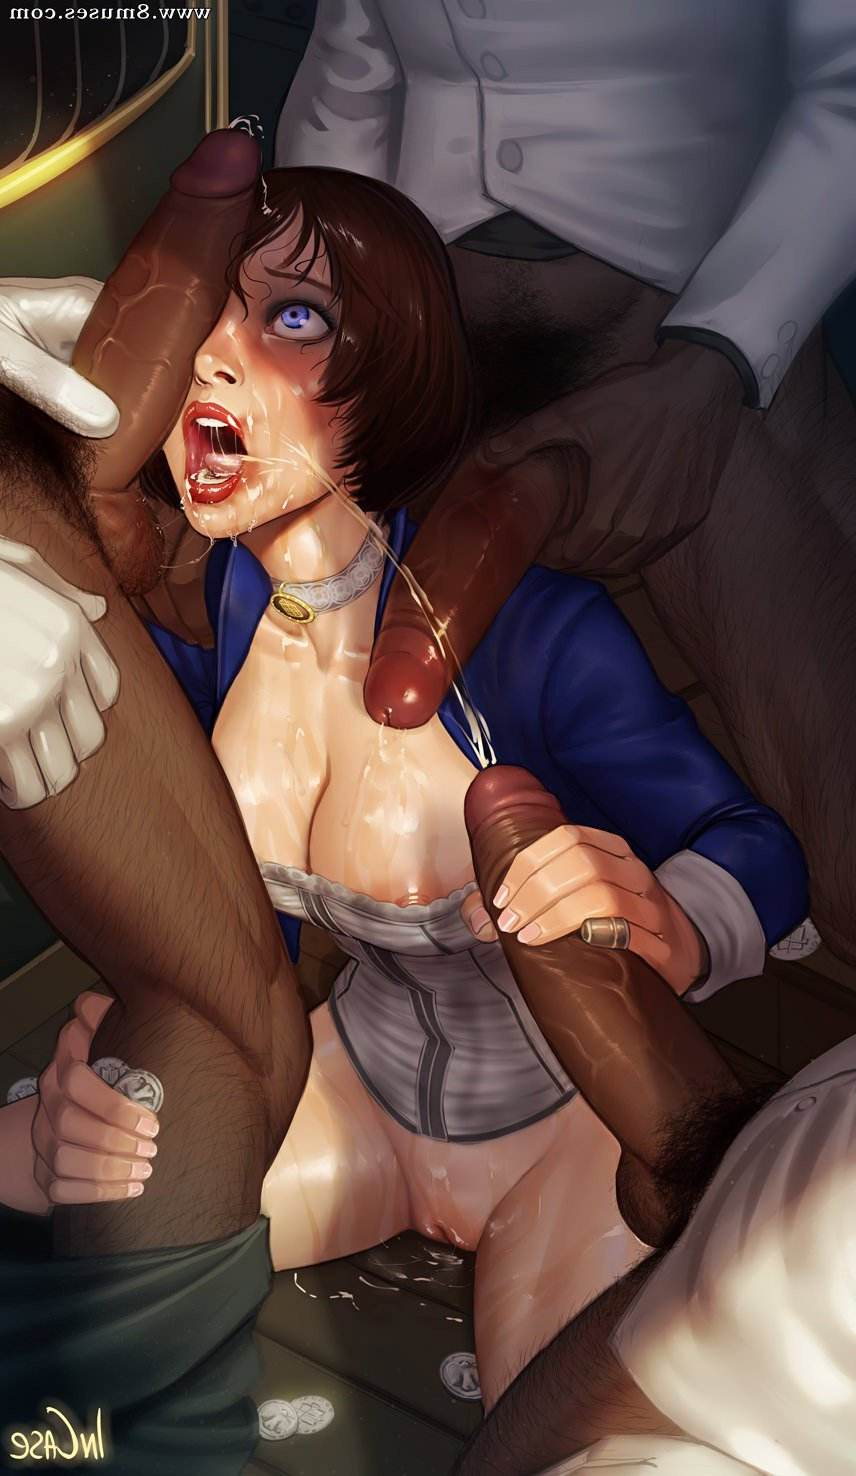 Incase-Comics/Artwork Artwork__8muses_-_Sex_and_Porn_Comics_279.jpg